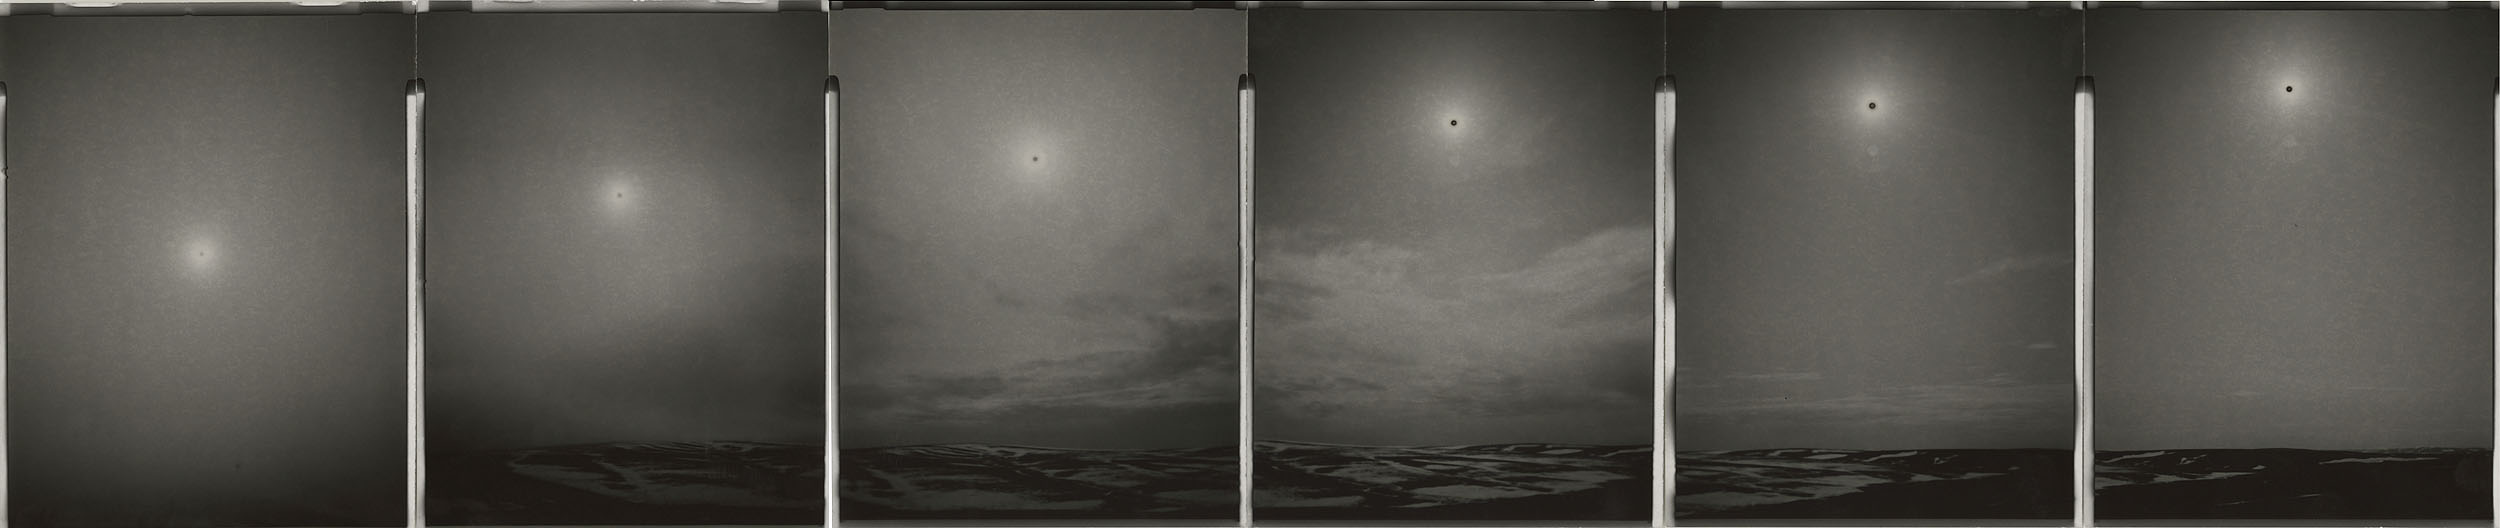 "Sunburned GSP #795(Clear skies descend into snow, North Slope, Alaska), 2014. Six 4""x5"" unique gelatin silver paper negatives. Private collection"